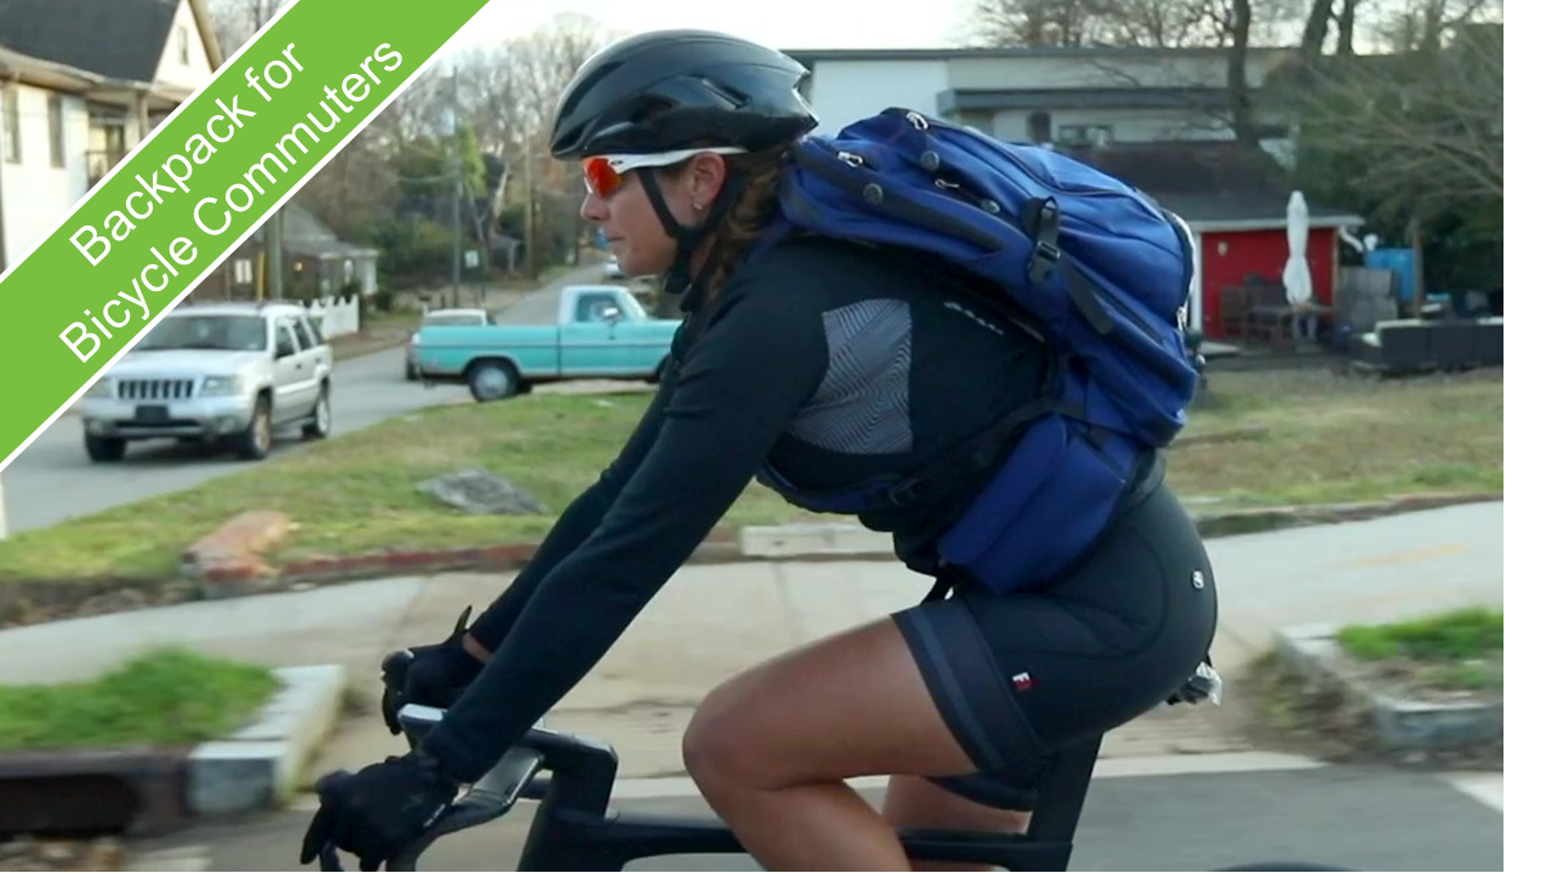 All-weather backpacks for Bike To Work professionals who demand Simplicity, Organization, and Protection Miss your opportunity on Kickstarter? CLICK BELOW for extended Order Period!